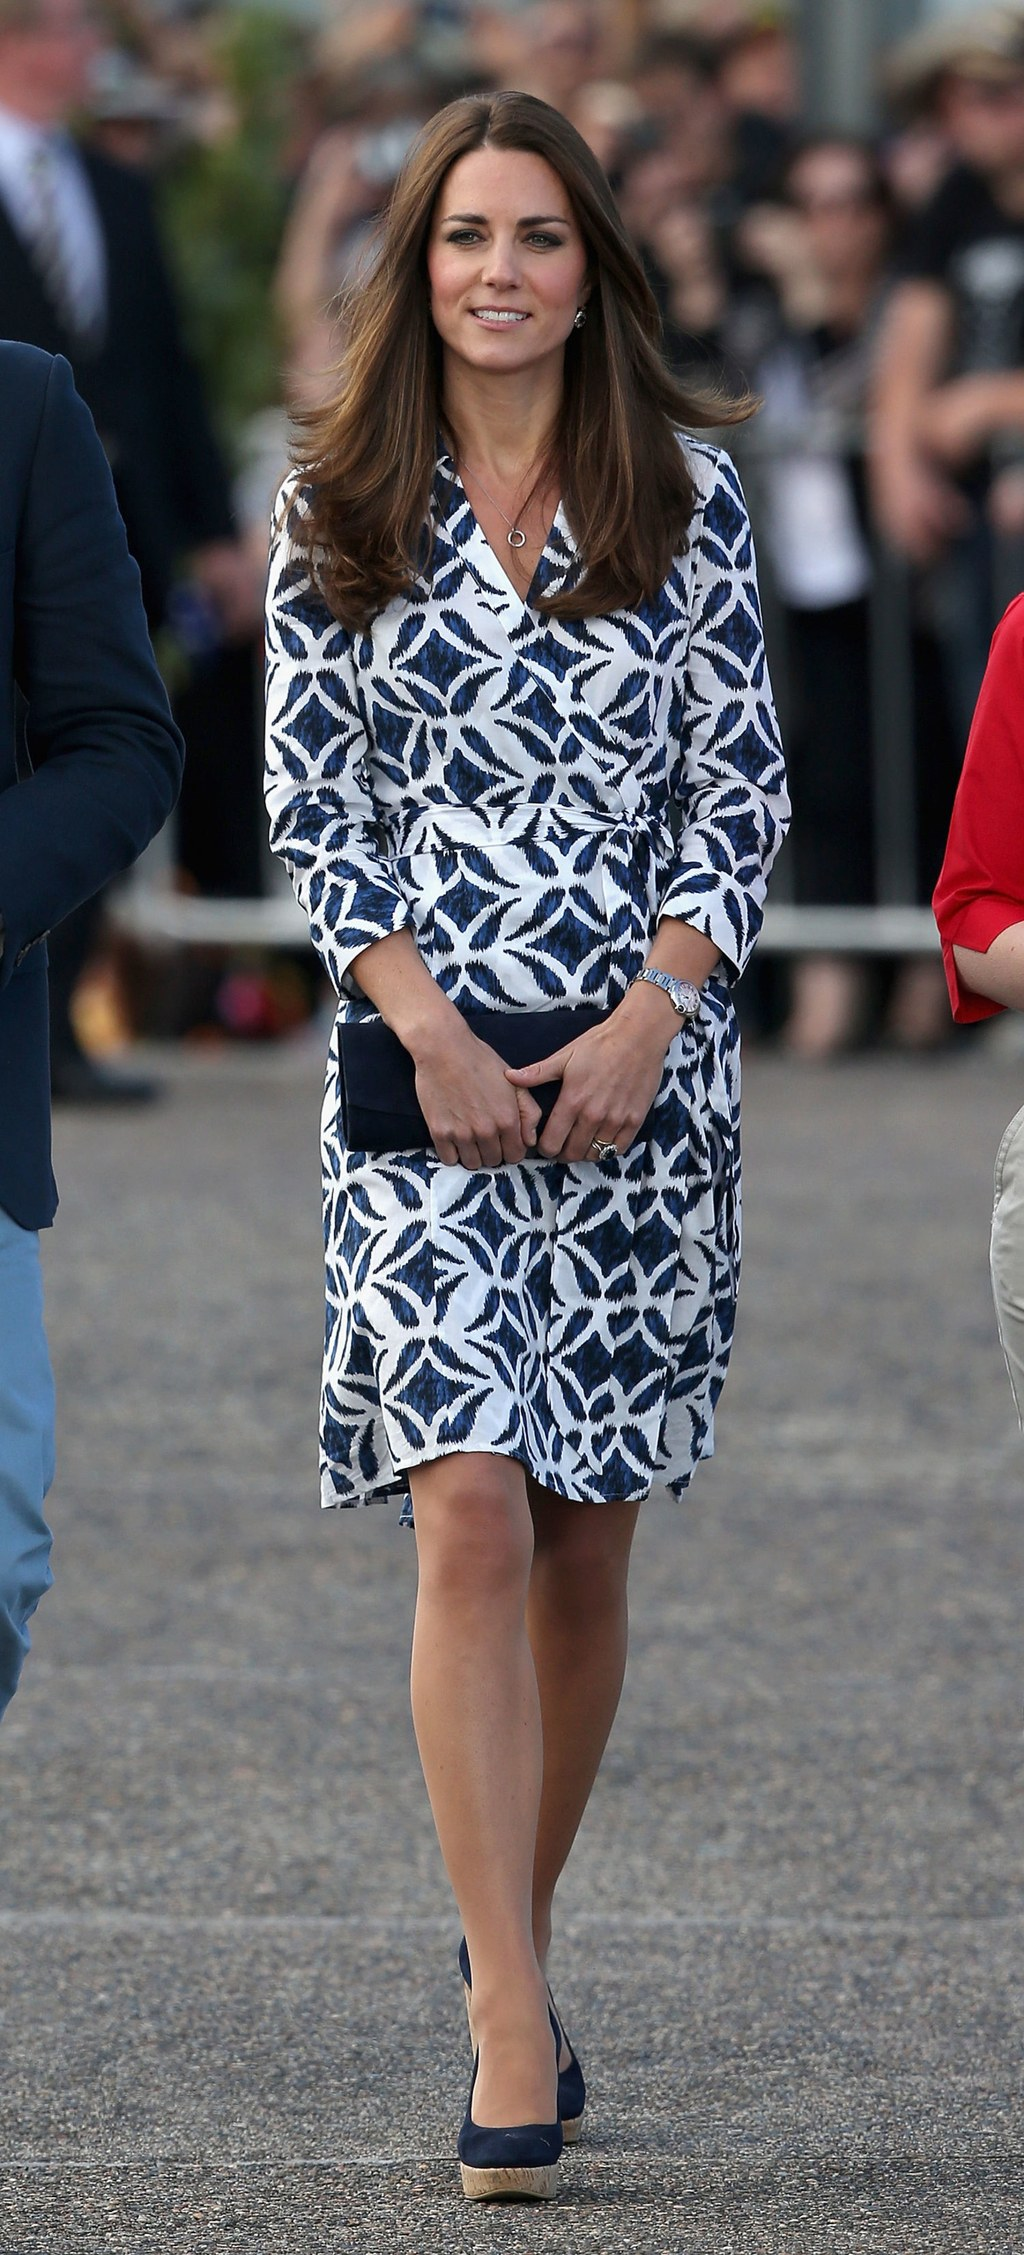 diane von furstenberg wrap dress kate middleton australia diane von furstenberg patrice wrap dress YJYEOAB